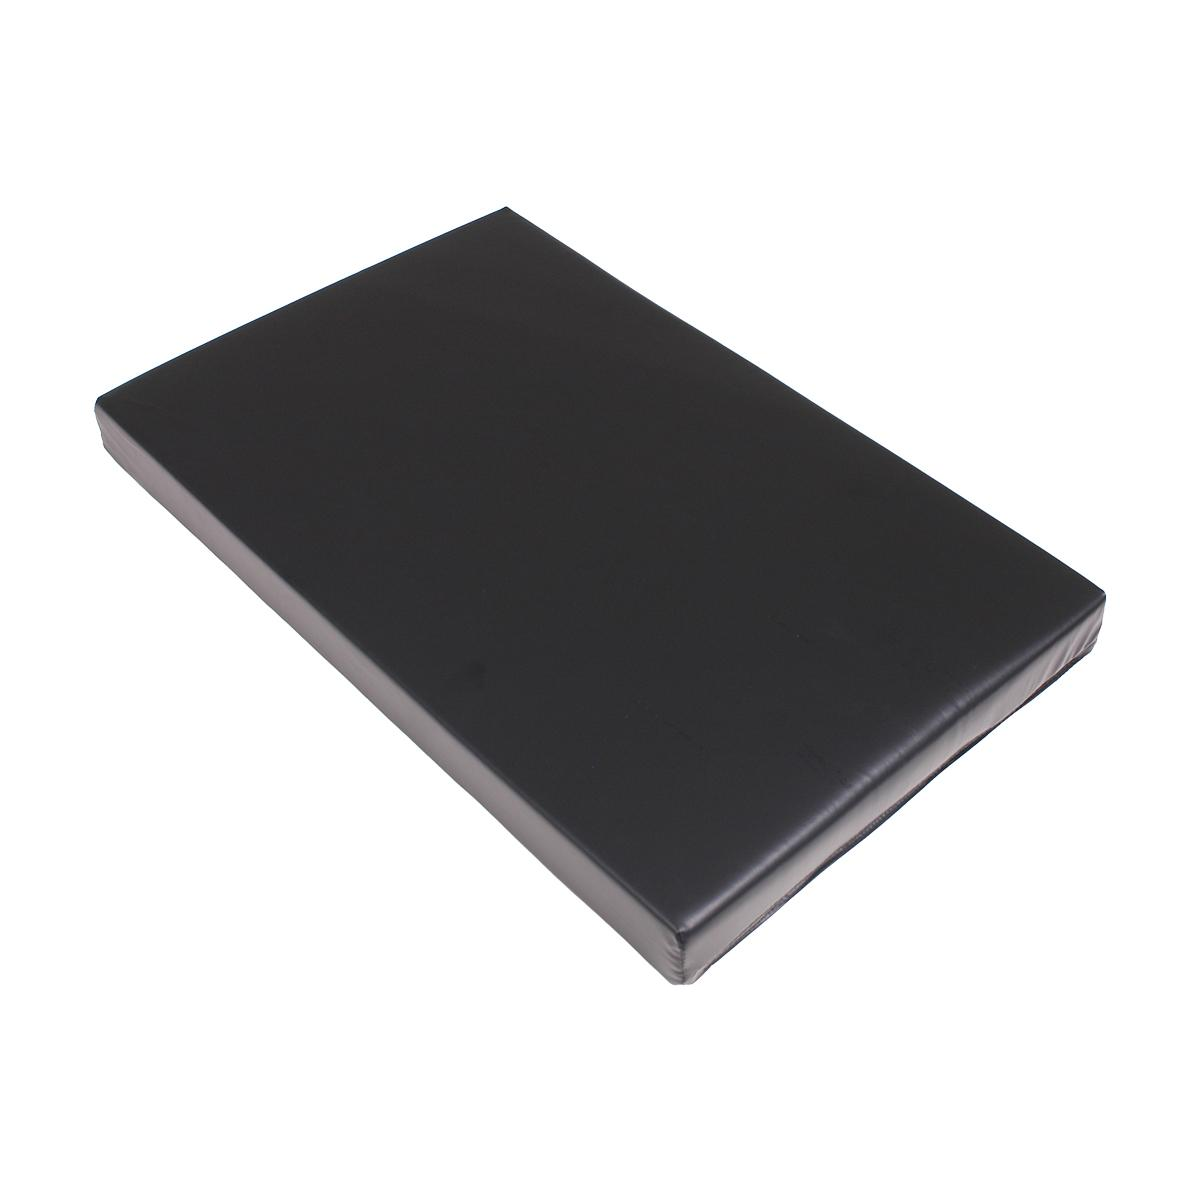 Carbon Lights™ Minor Procedure Pad, #A-30410-Pad1, #A-30410-Pad, diagonal view